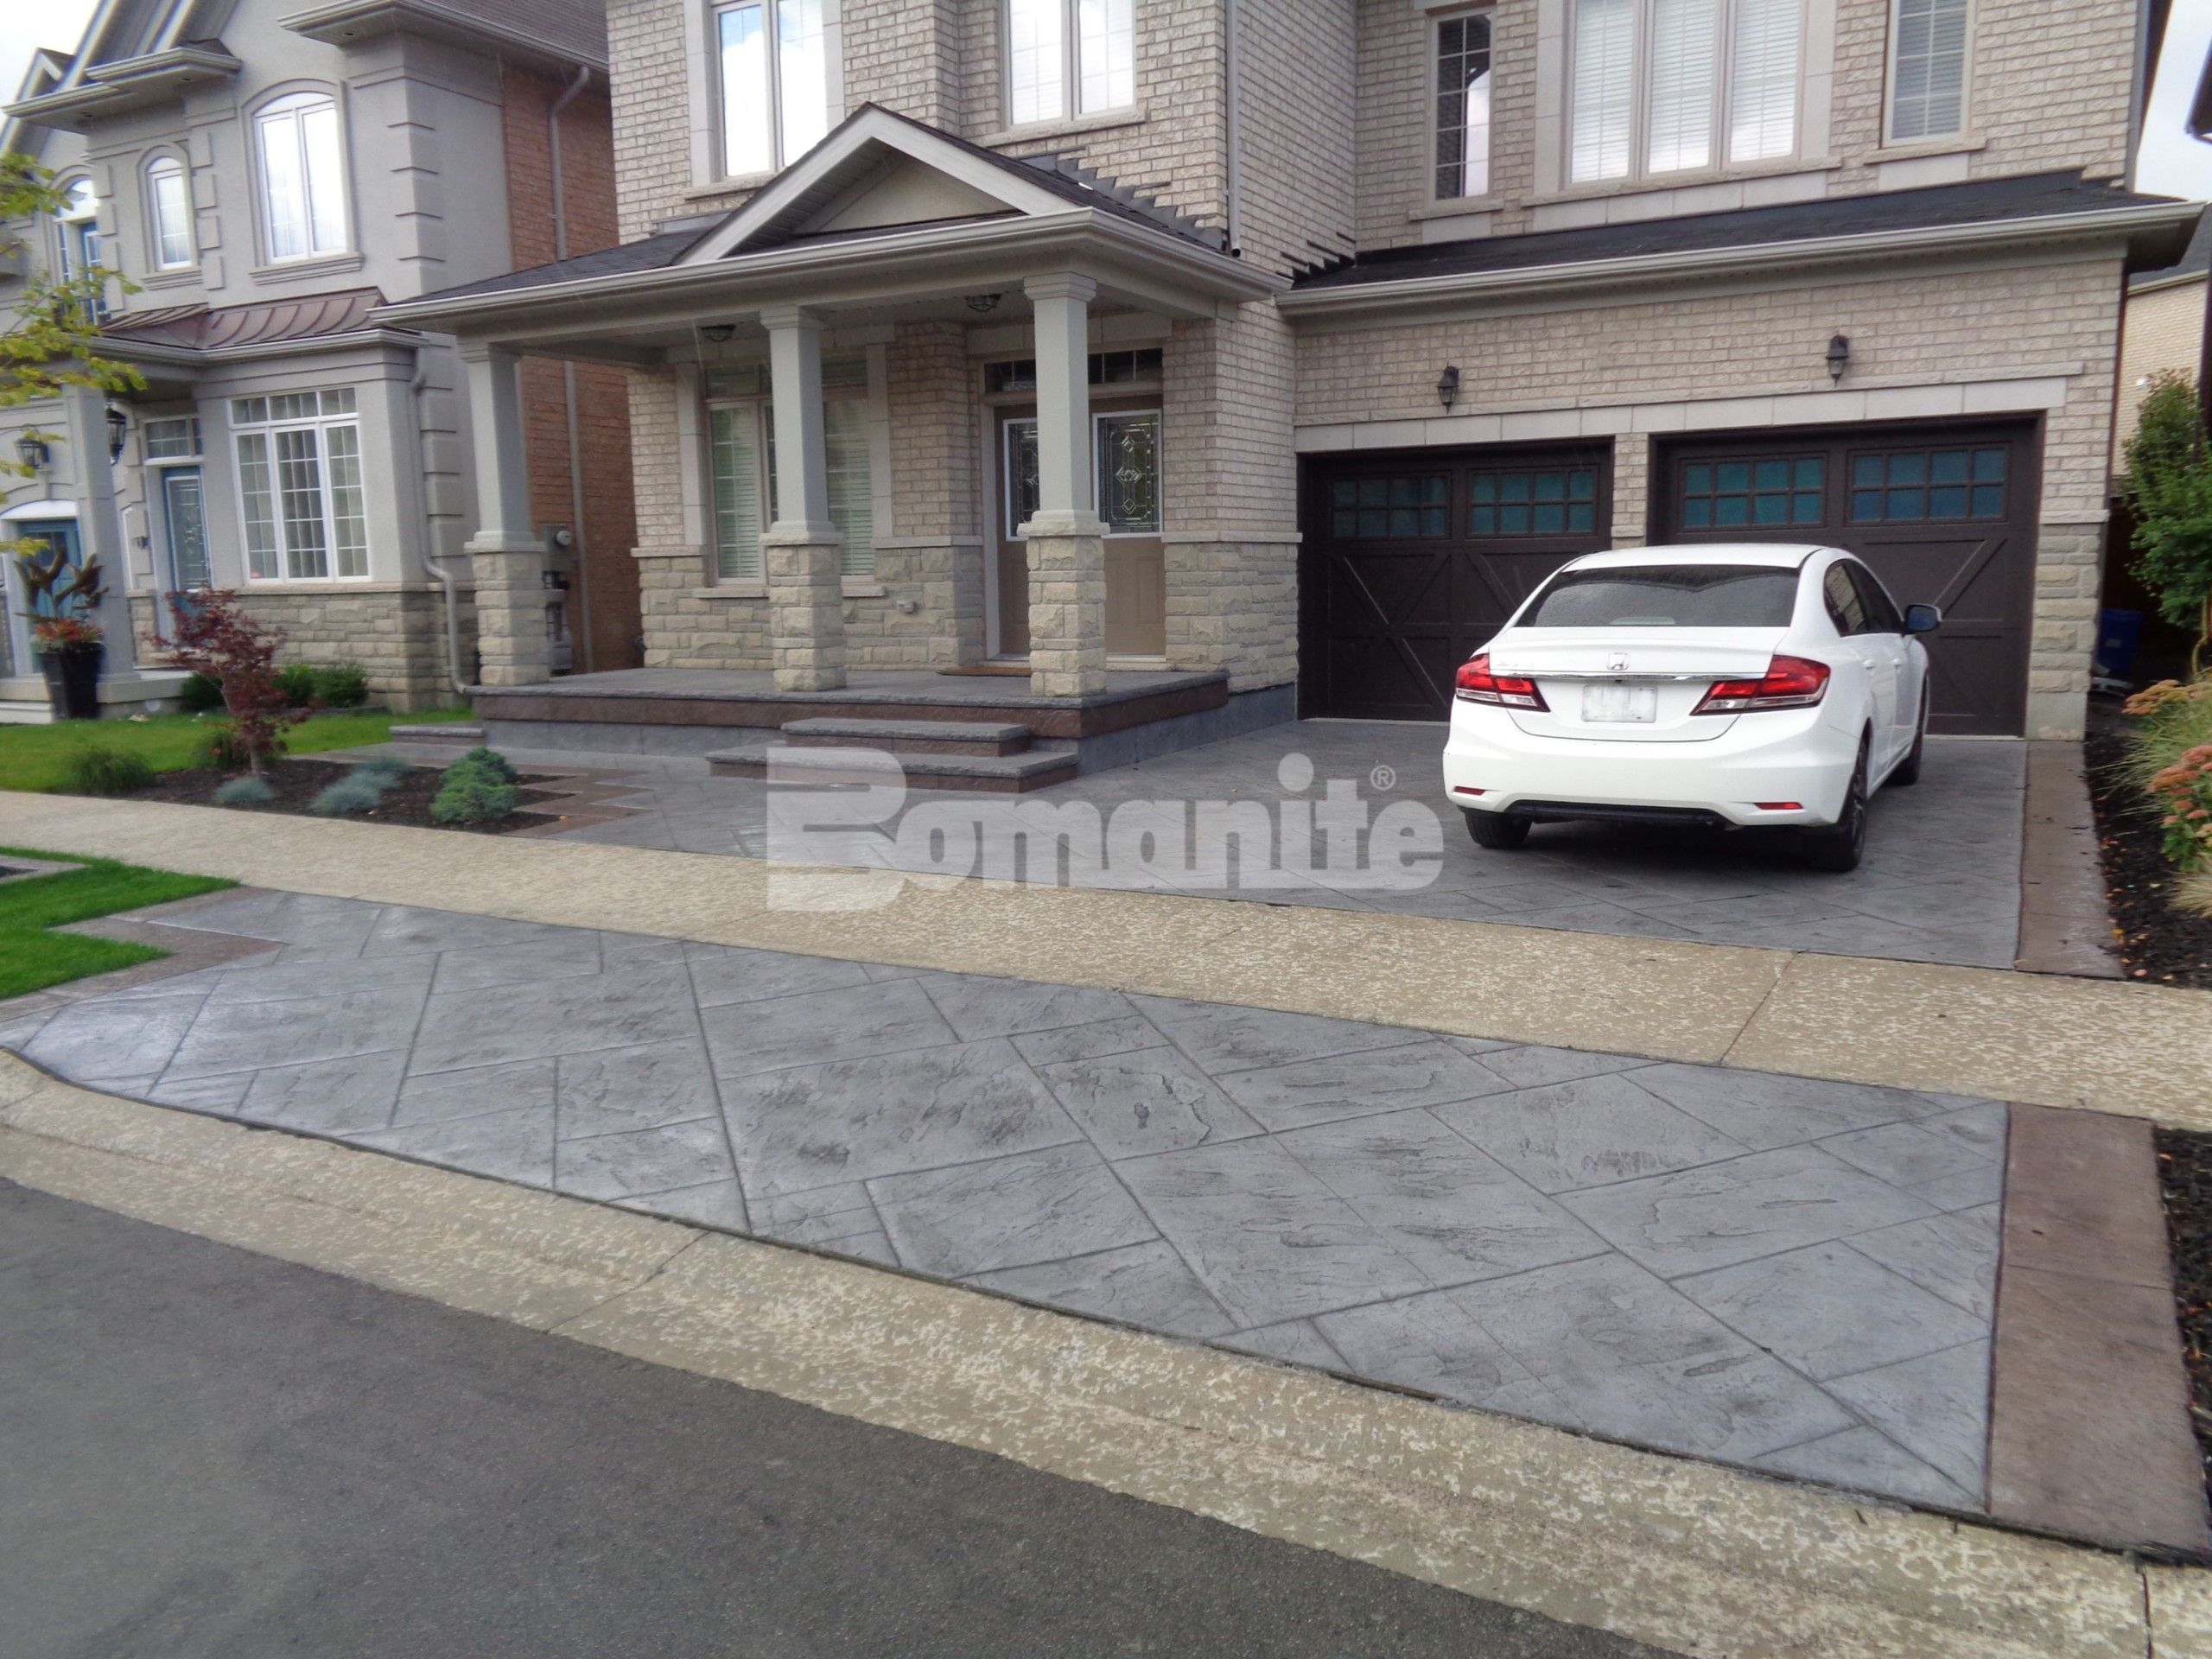 Bomanite Imprint Systems decorative concrete driveway, porch, and steps, using Yorkshire Stone Pattern with Bomanite Shale Gray Color Hardener installed at a residence in Burlington, Ontario, by Bomanite Toronto located in Vaughn, Ontario near Toronto Canada.